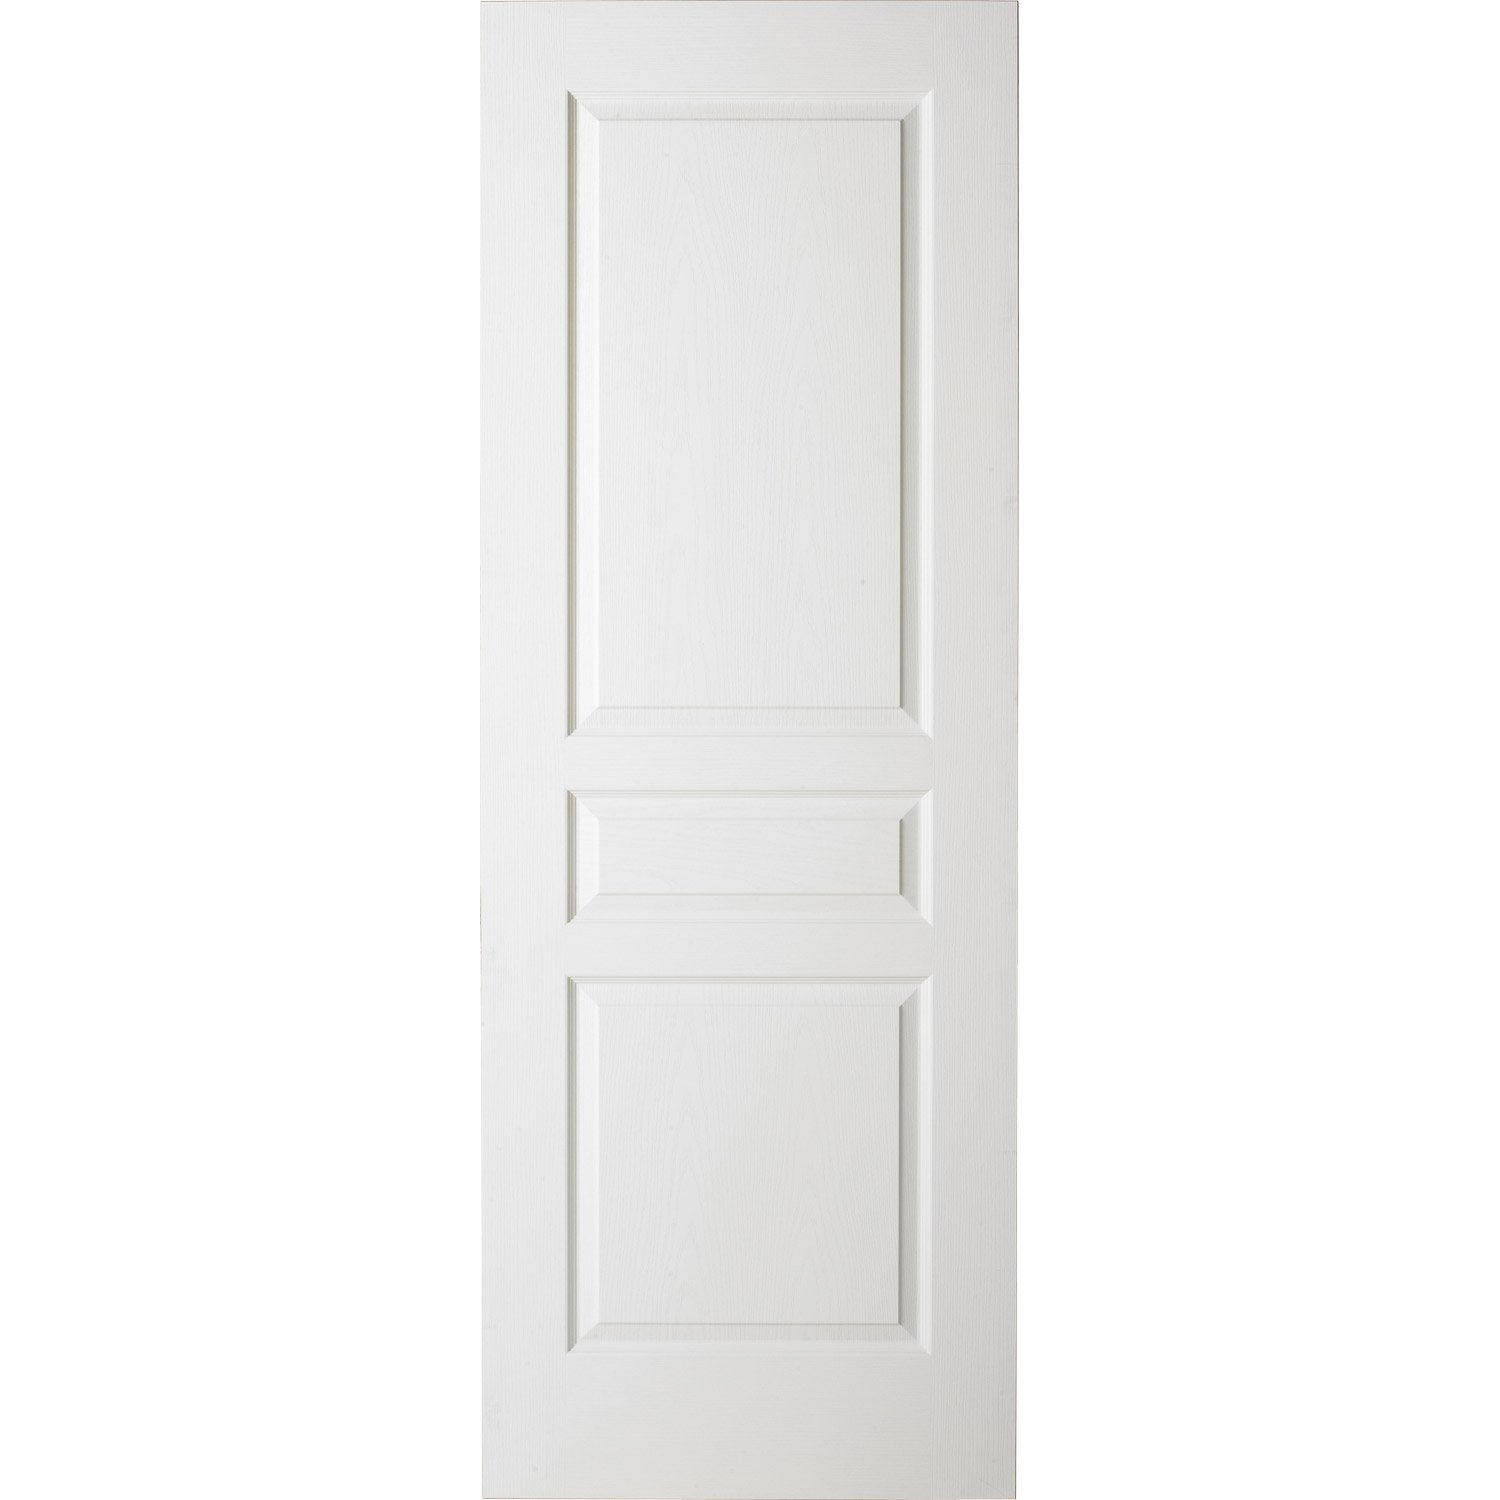 Porte coulissante postform e x cm leroy merlin for Porte interieur 73 cm